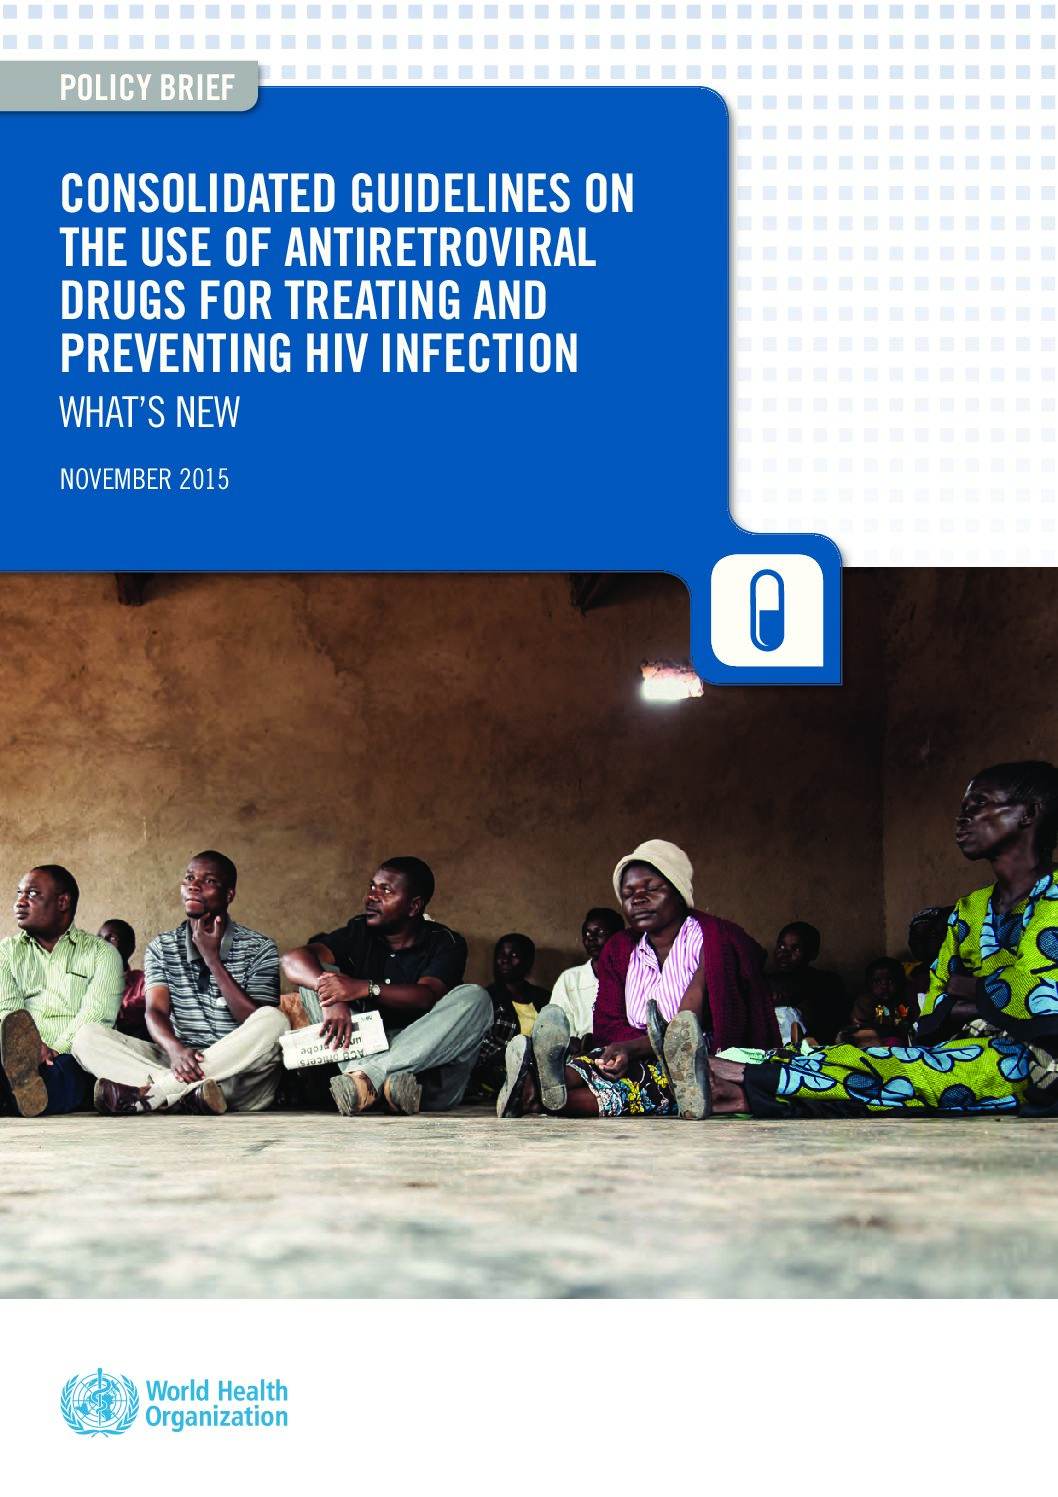 Consolidated guidelines on the use of antiretroviral drugs for treating and preventing HIV infection. 2015.